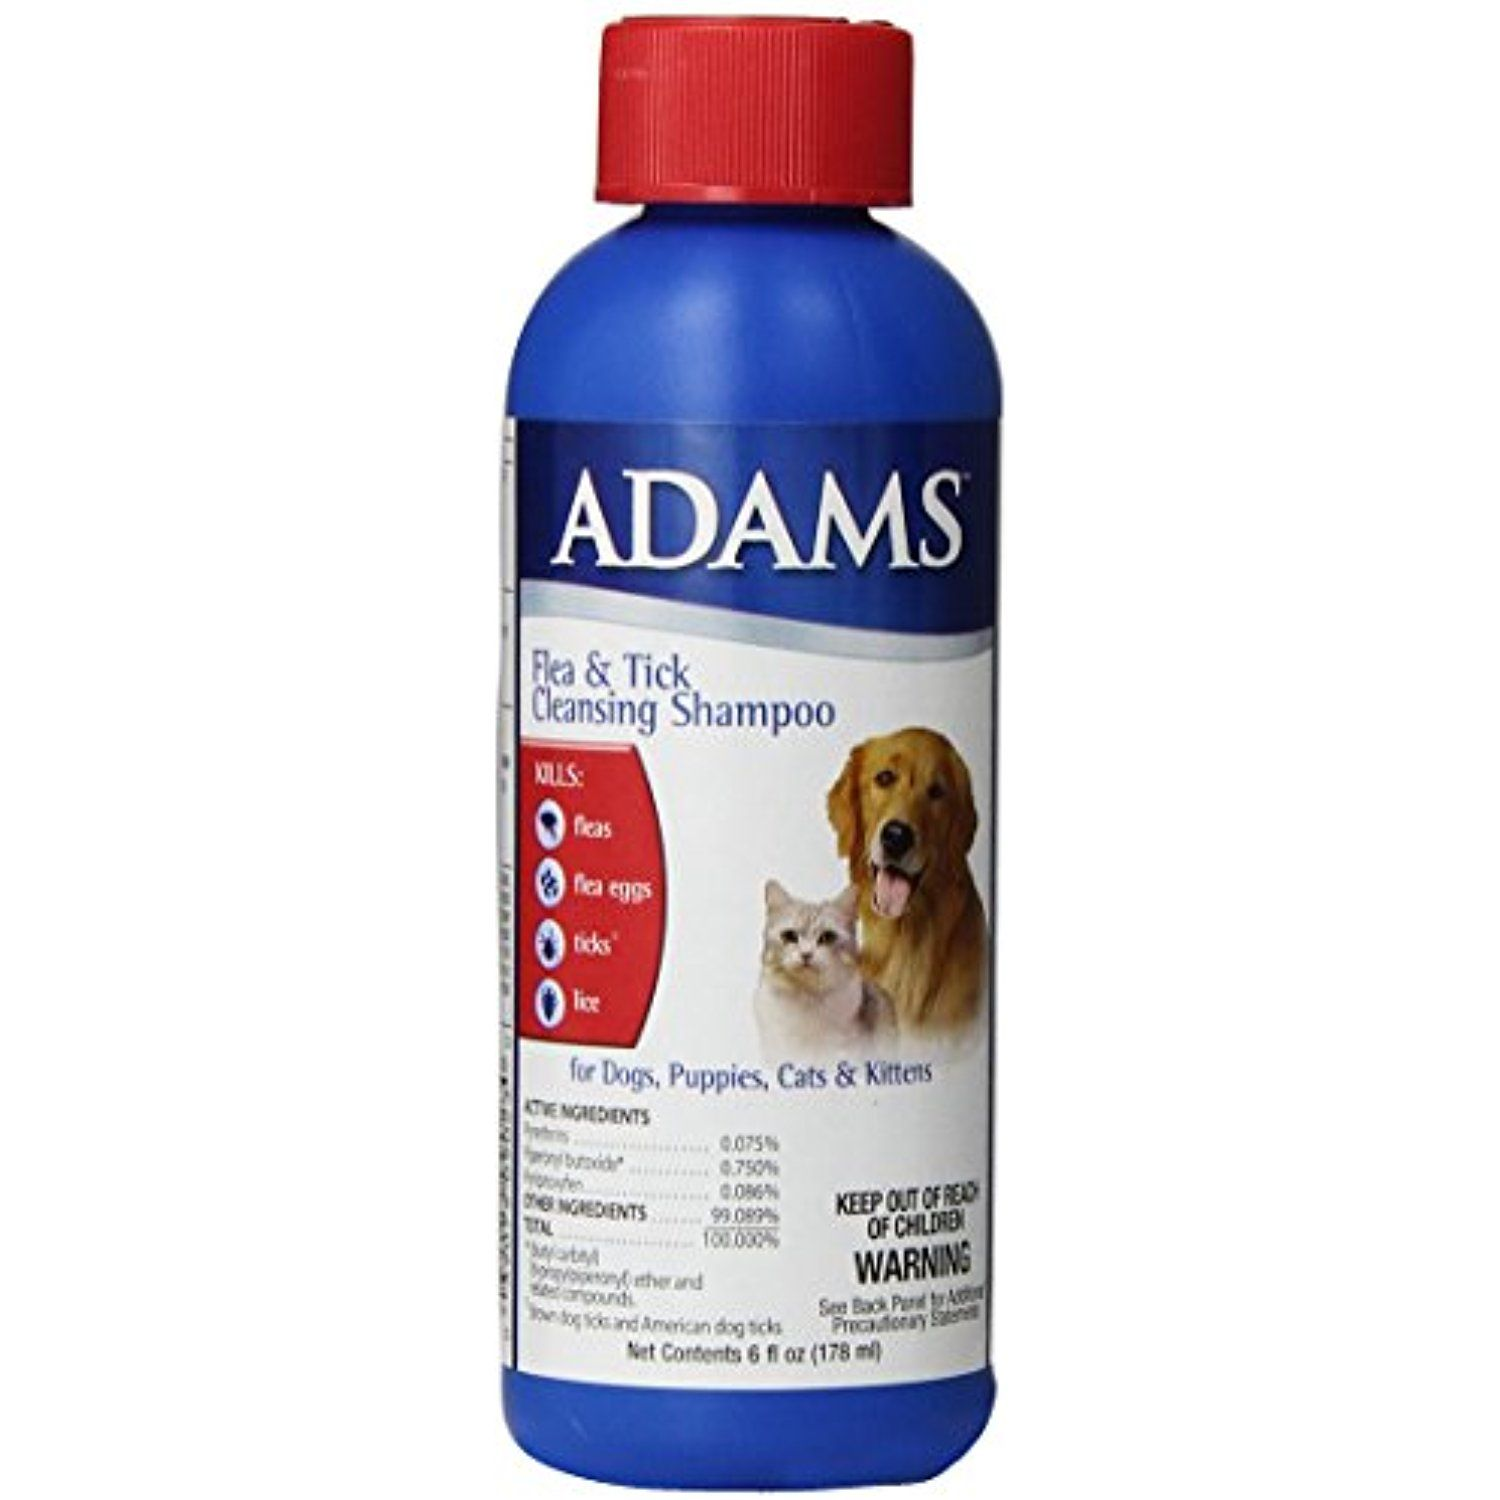 Adams Flea And Tick Control Cleansing Shampoo For Cats And Dogs To Have More Info Could Be Found At The Image Ur Flea And Tick Dog Shampoo Cleansing Shampoo